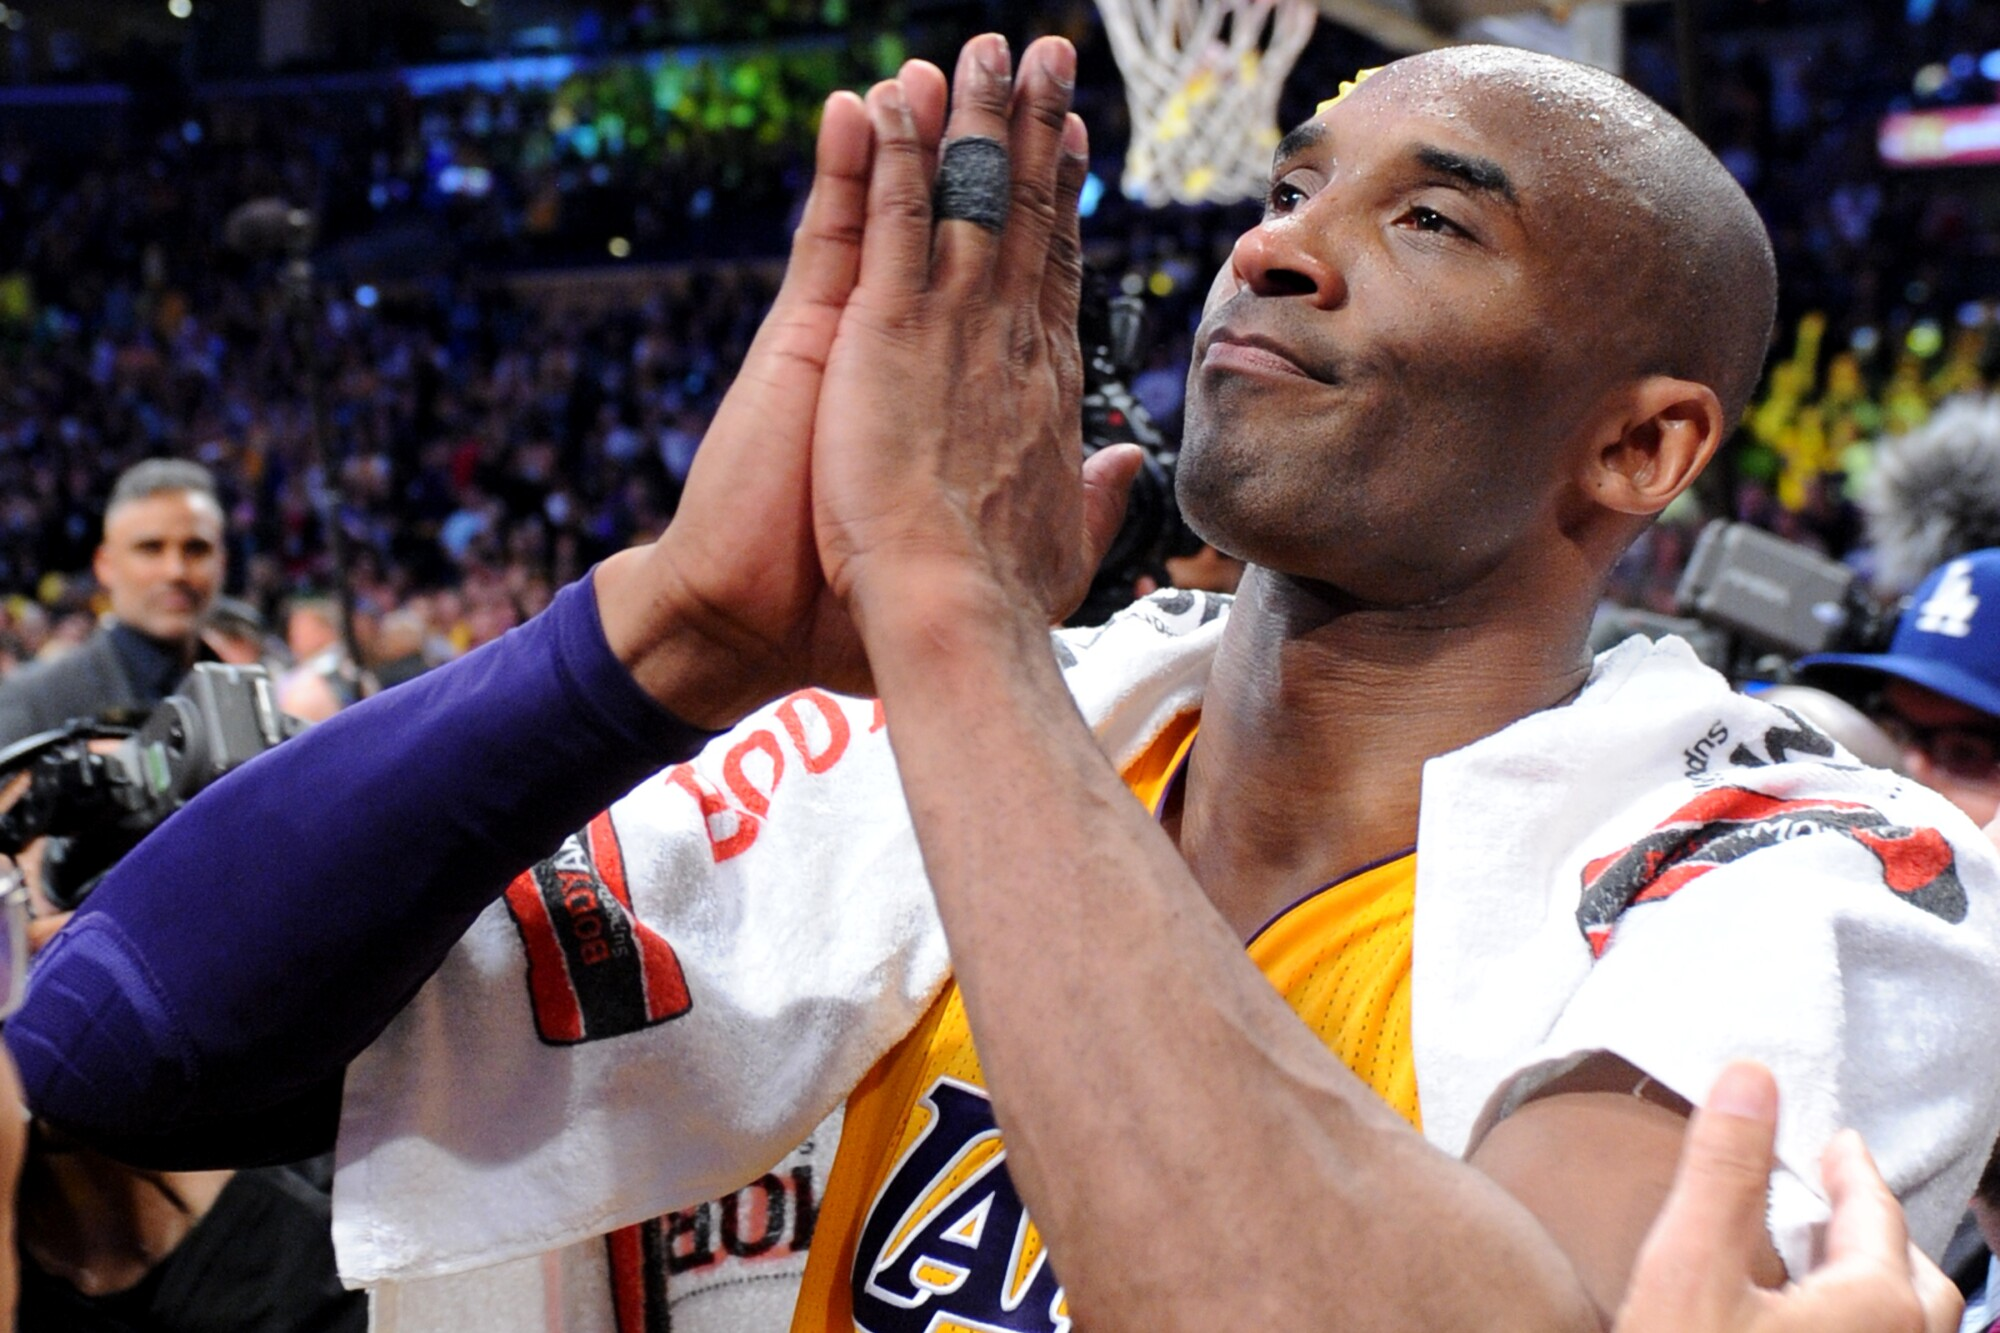 Lakers star Kobe Bryant pays homage to the crowd at Staples Center following the final game of his career on April 13, 2016.